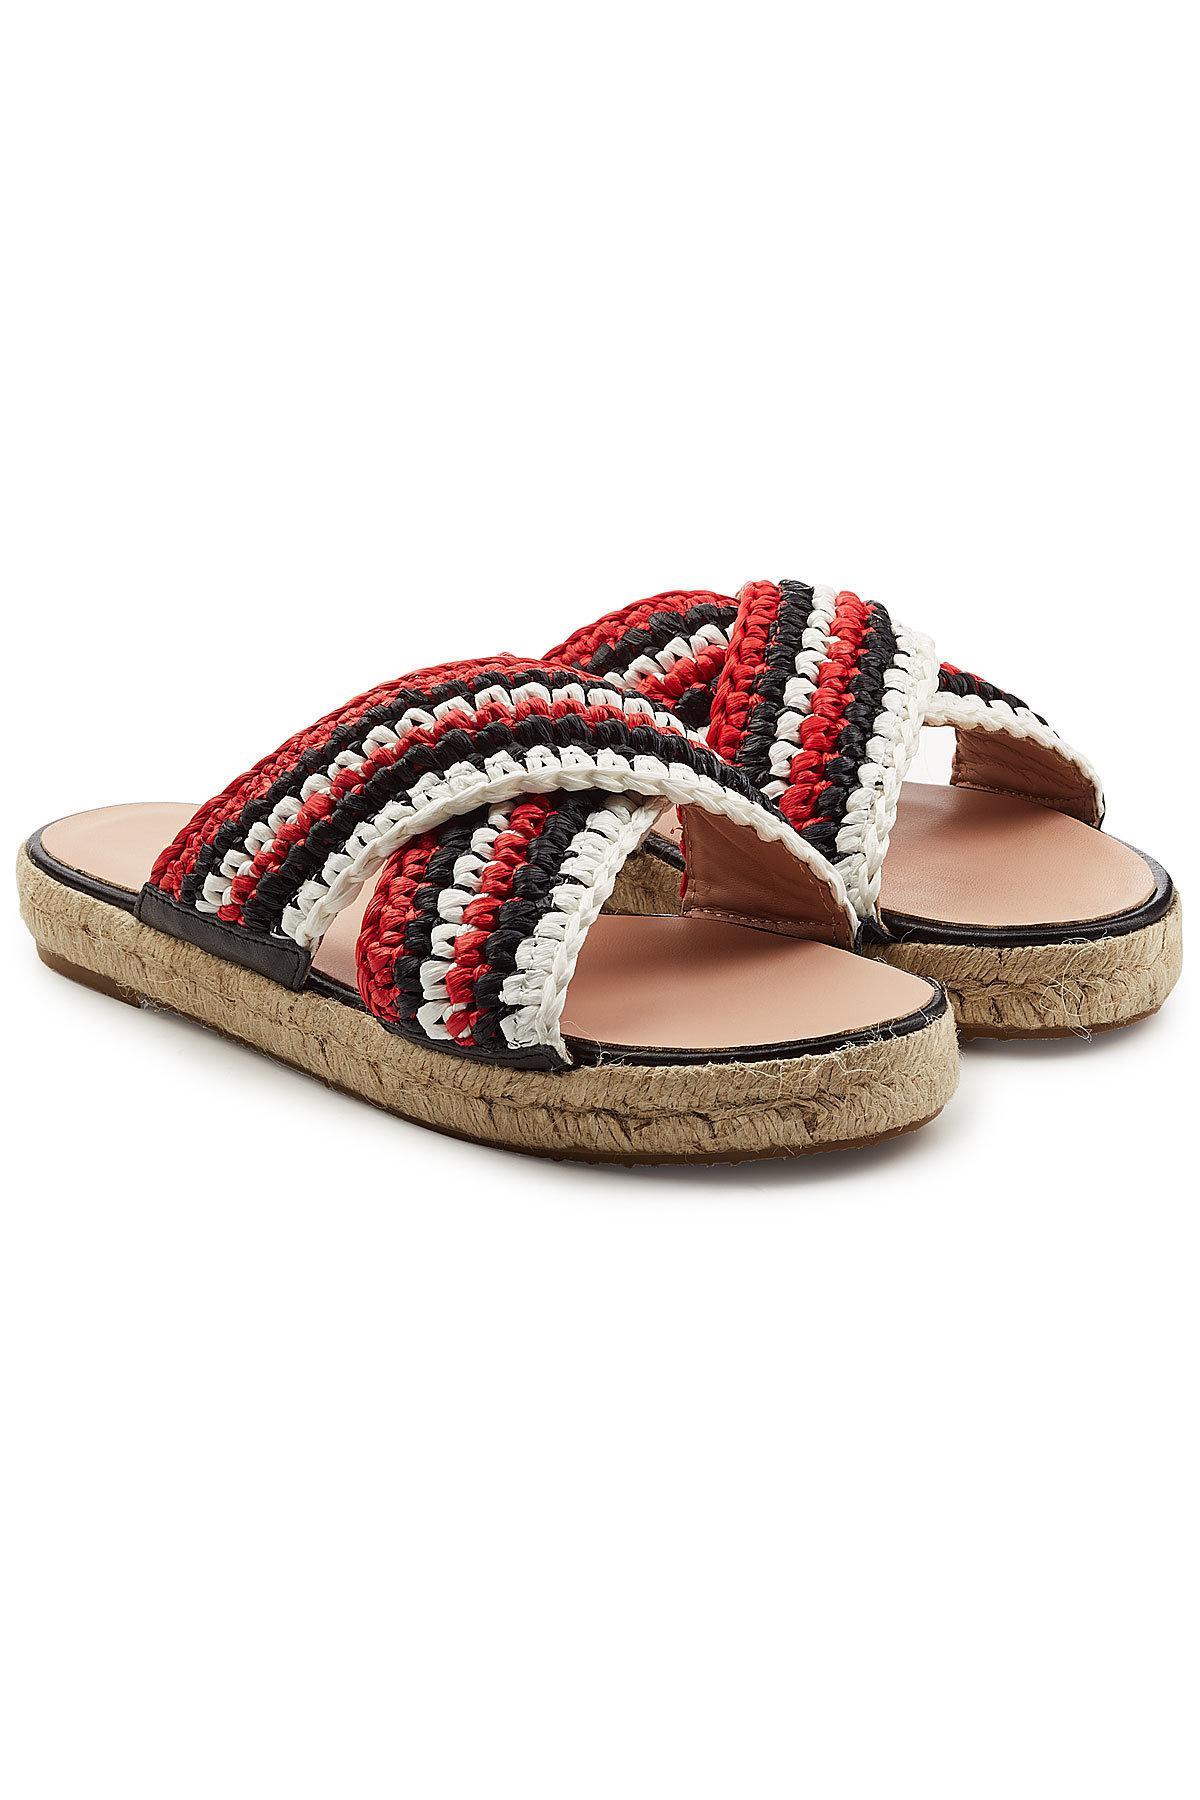 embossed strappy sandals Red Valentino ZJo1a1vZ